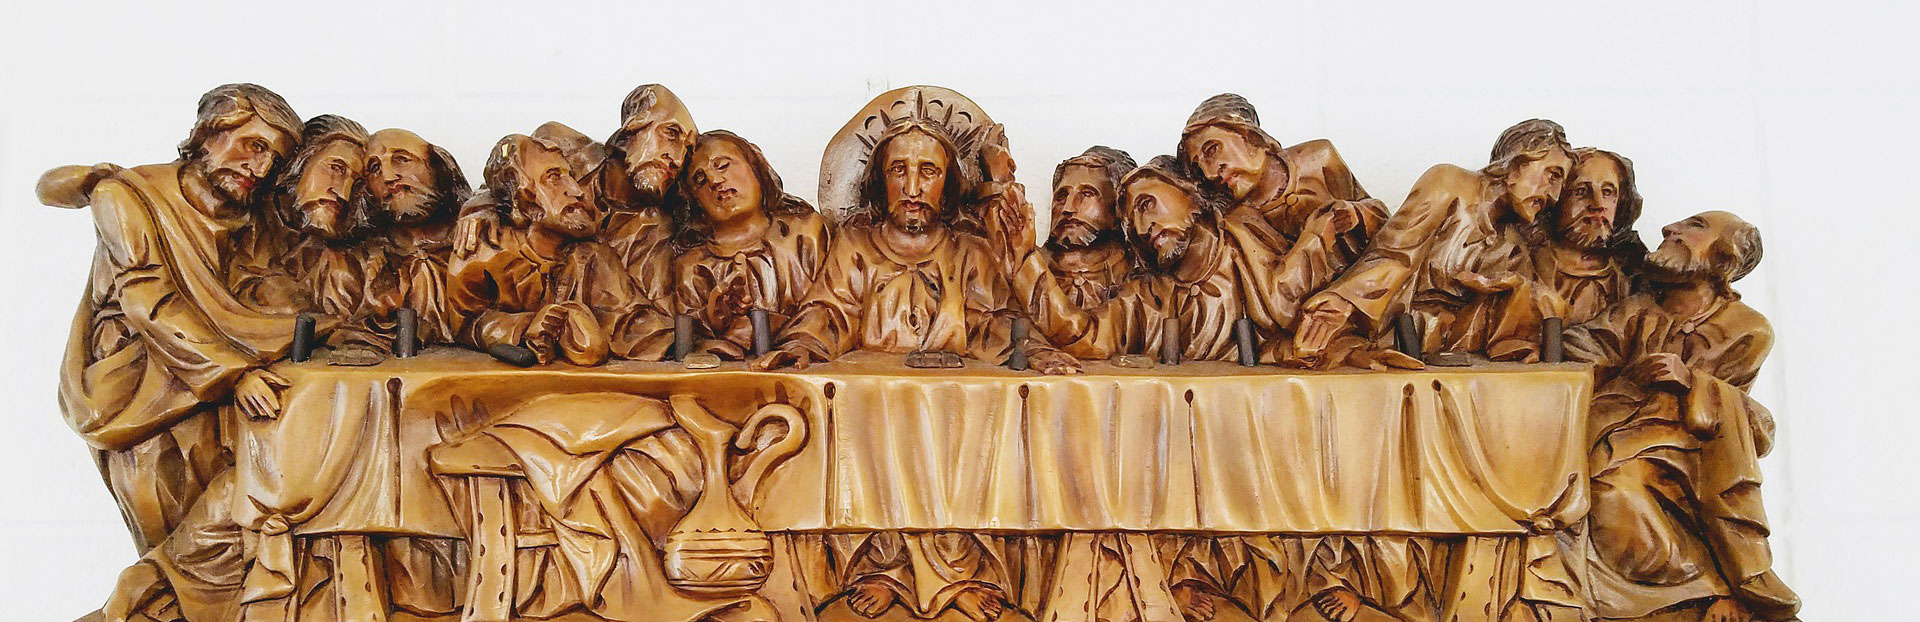 Holy Thursday: Eucharist and service are inextricably linked